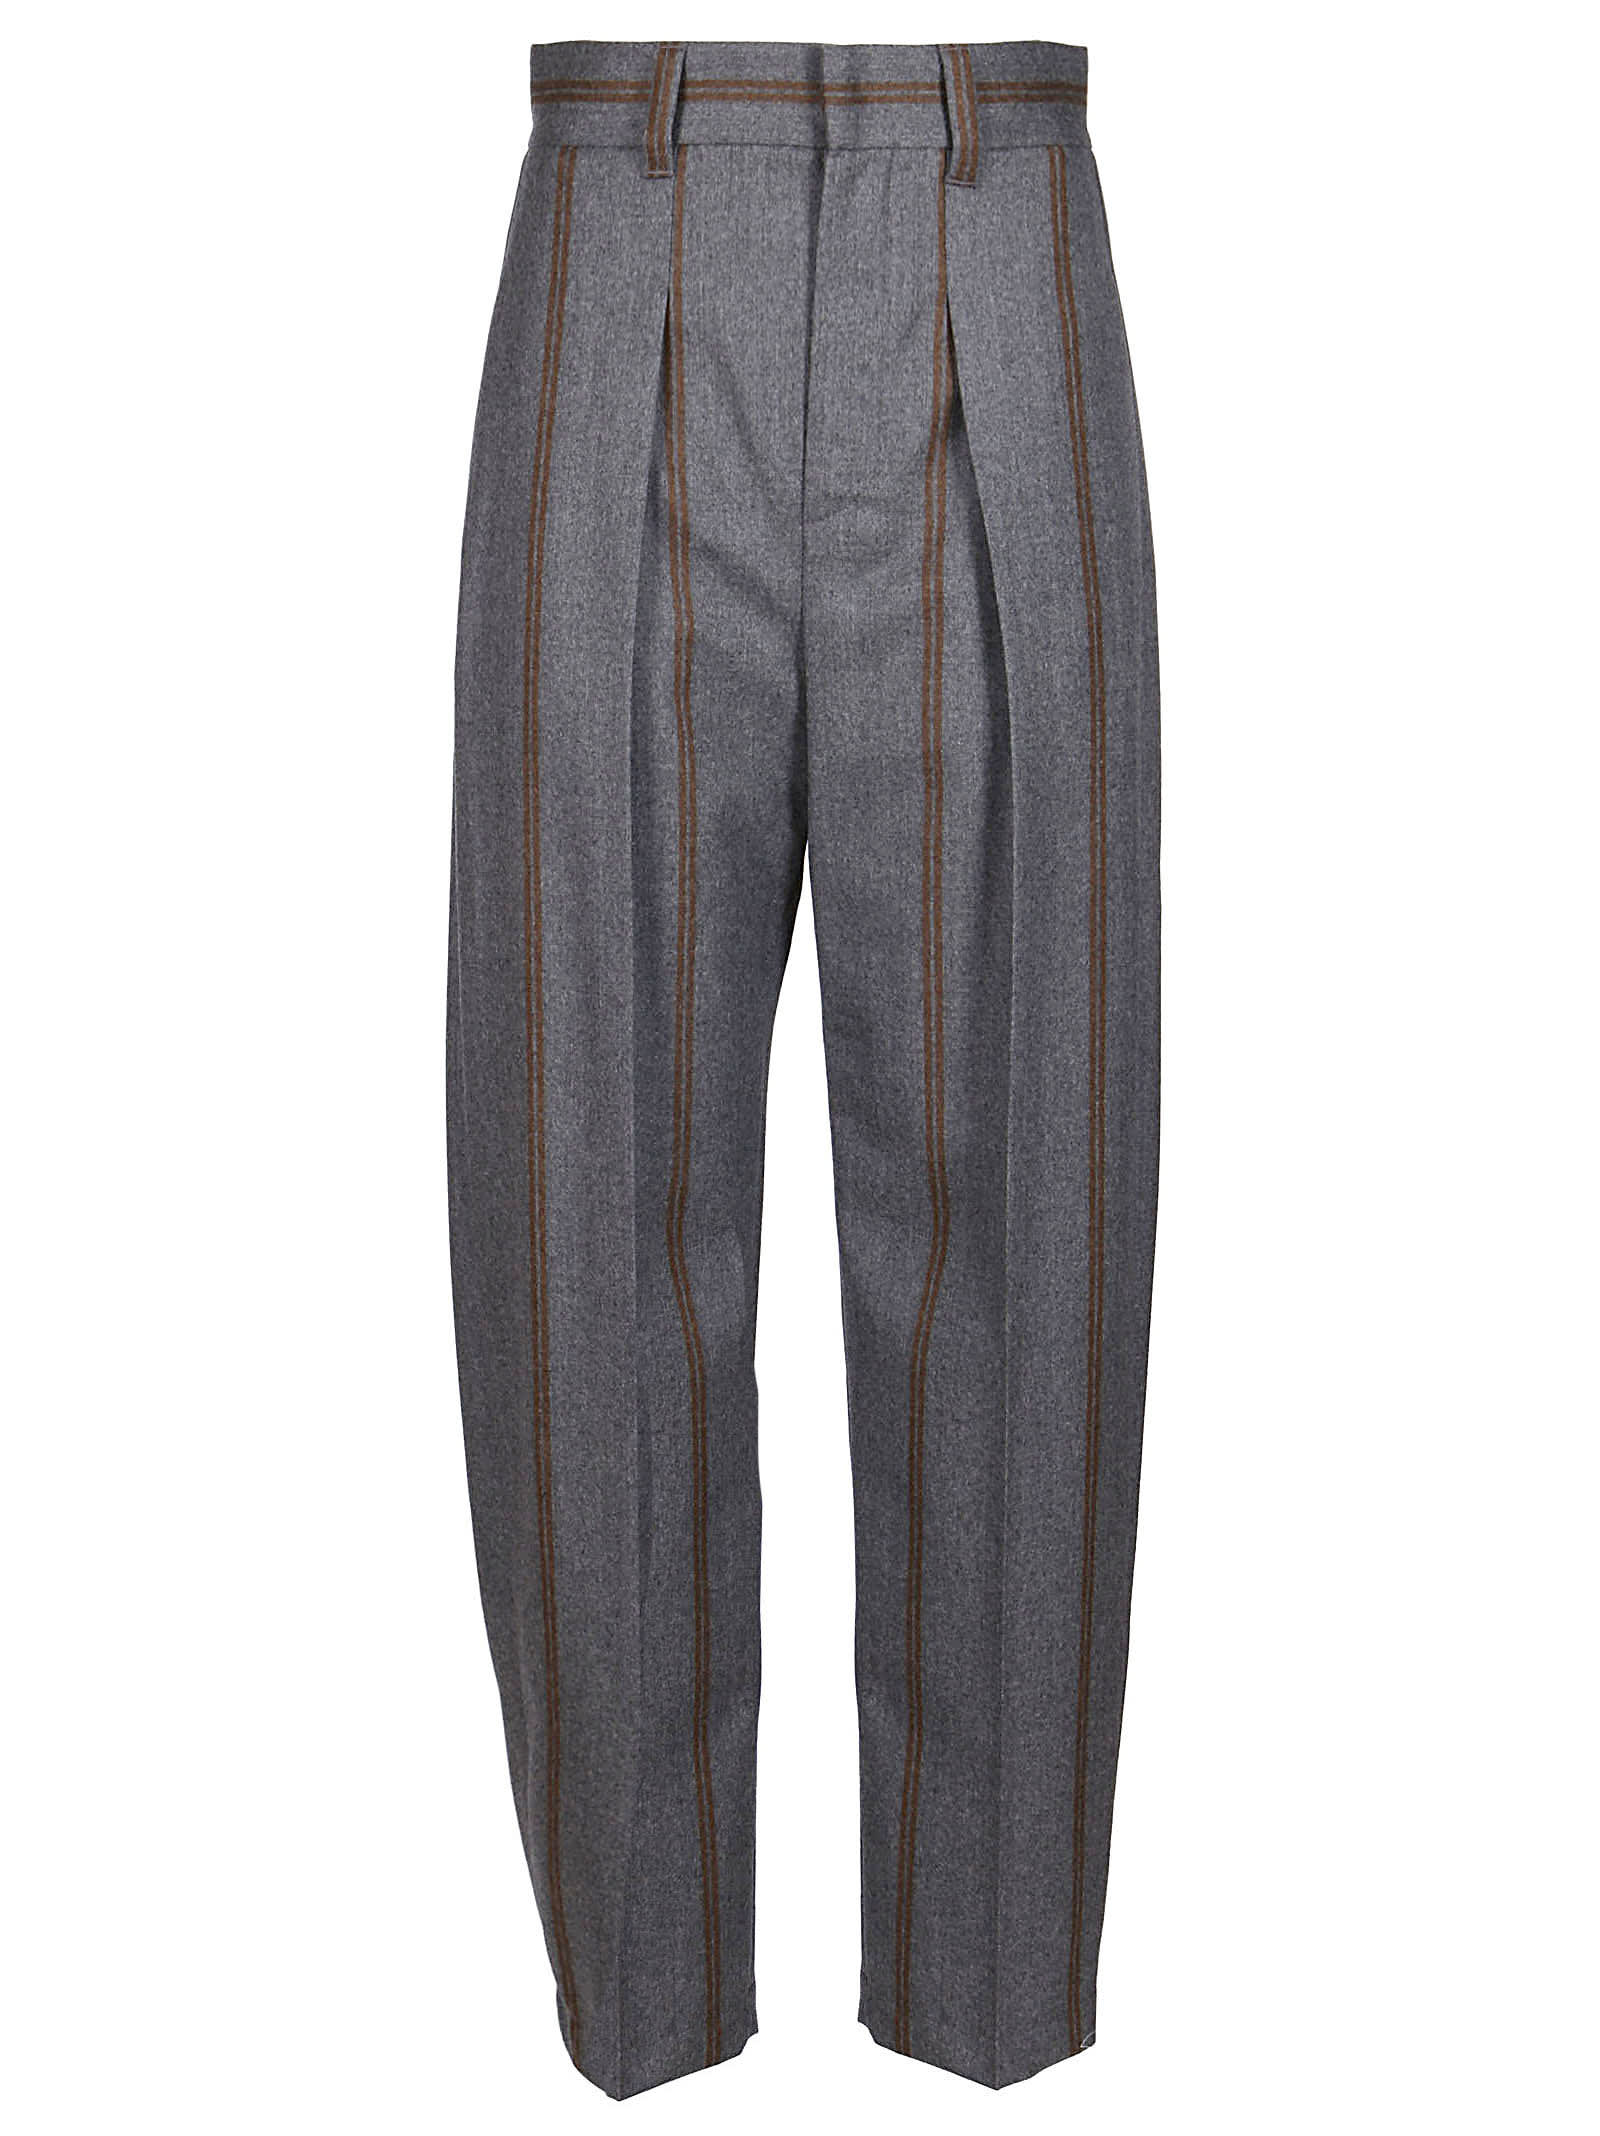 Brunello Cucinelli Grey Virgin Wool Trousers